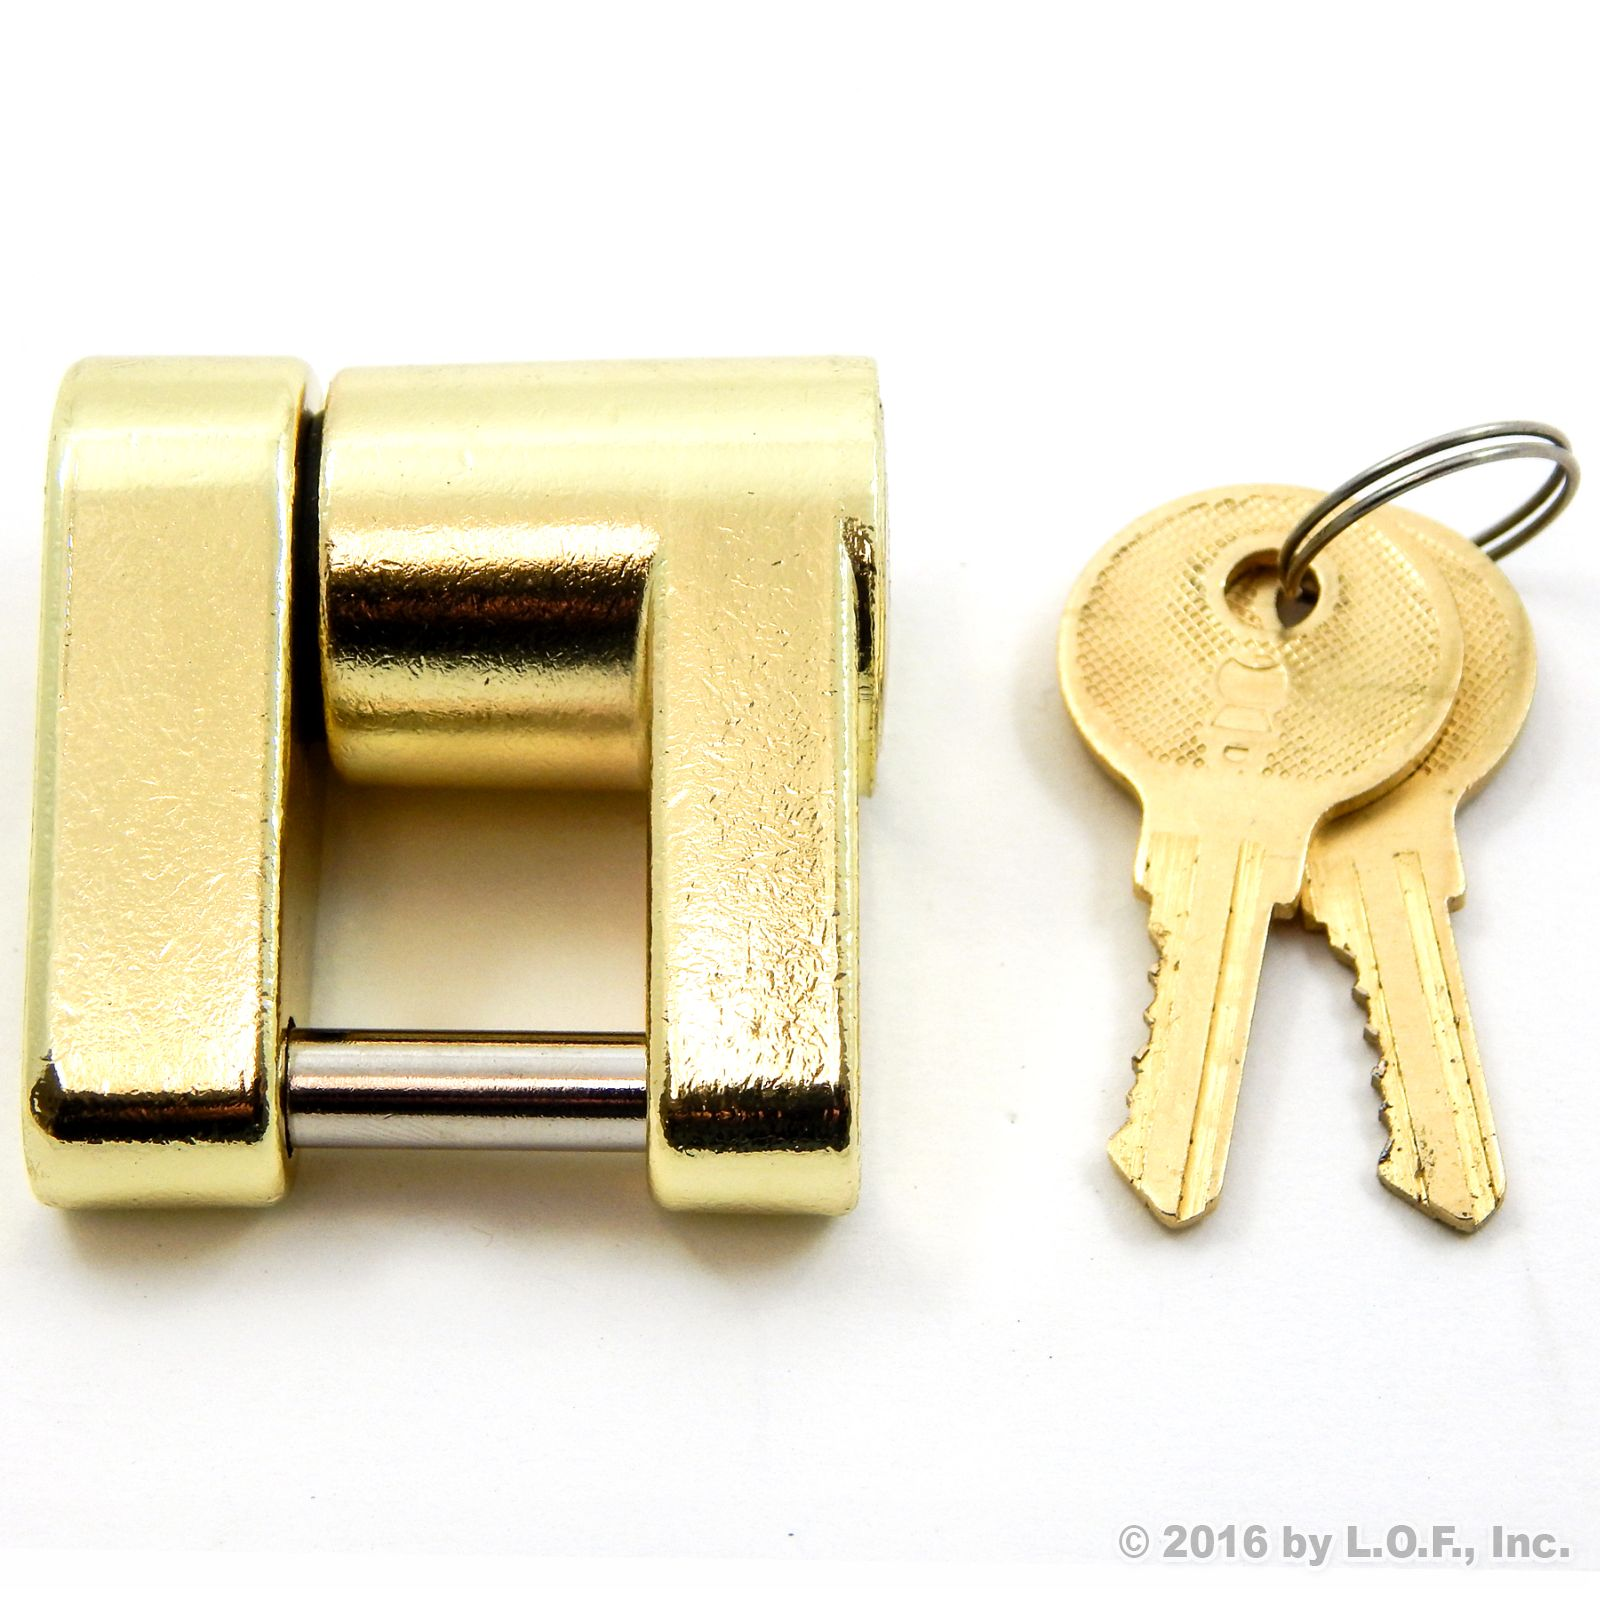 Trailer Coupler Receiver Tow Hitch Lock Brass Pin Latch with 2 keys